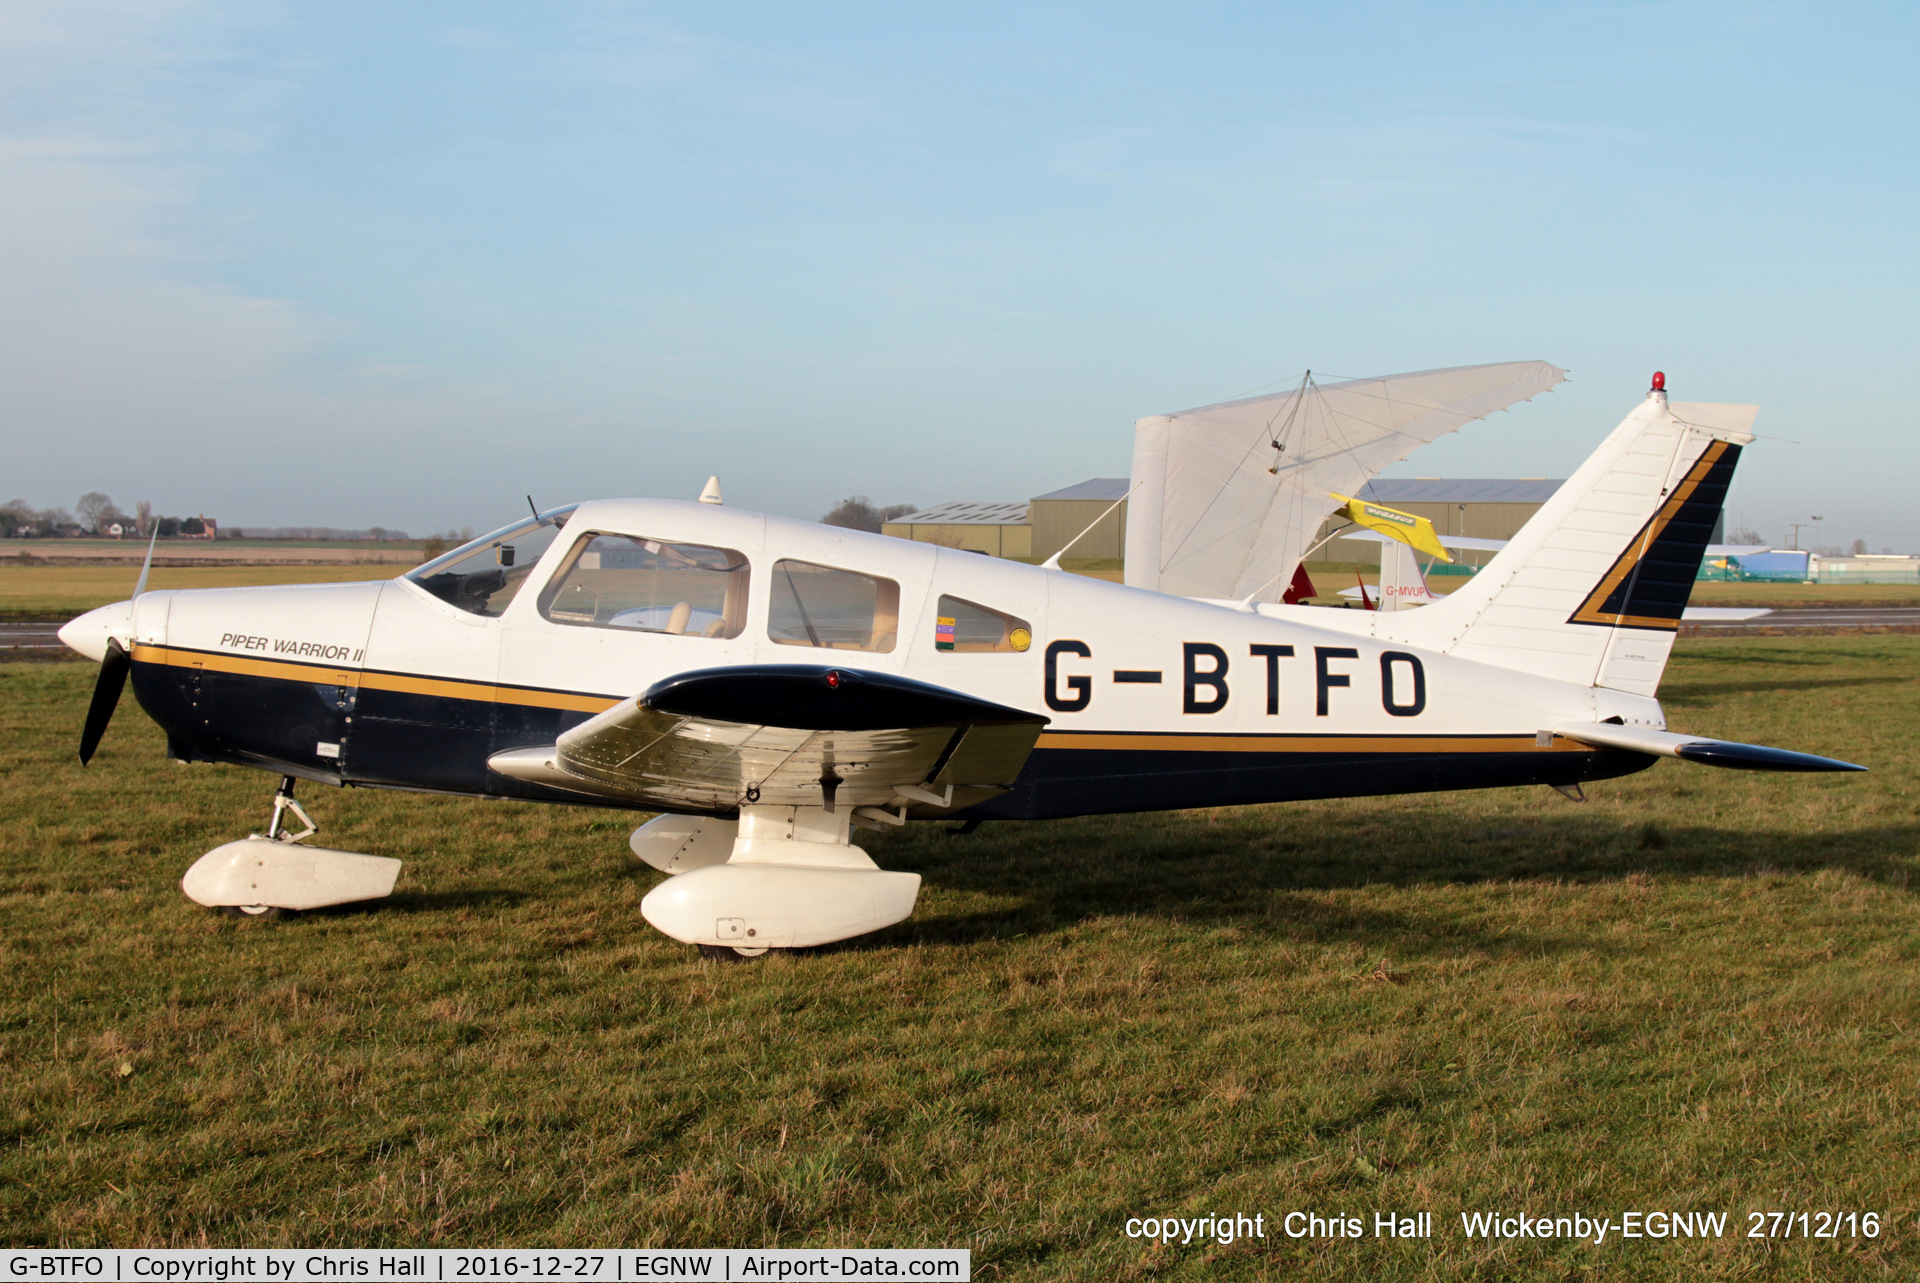 G-BTFO, 1978 Piper PA-28-161 Cherokee Warrior II C/N 28-7816580, at the Wickenby